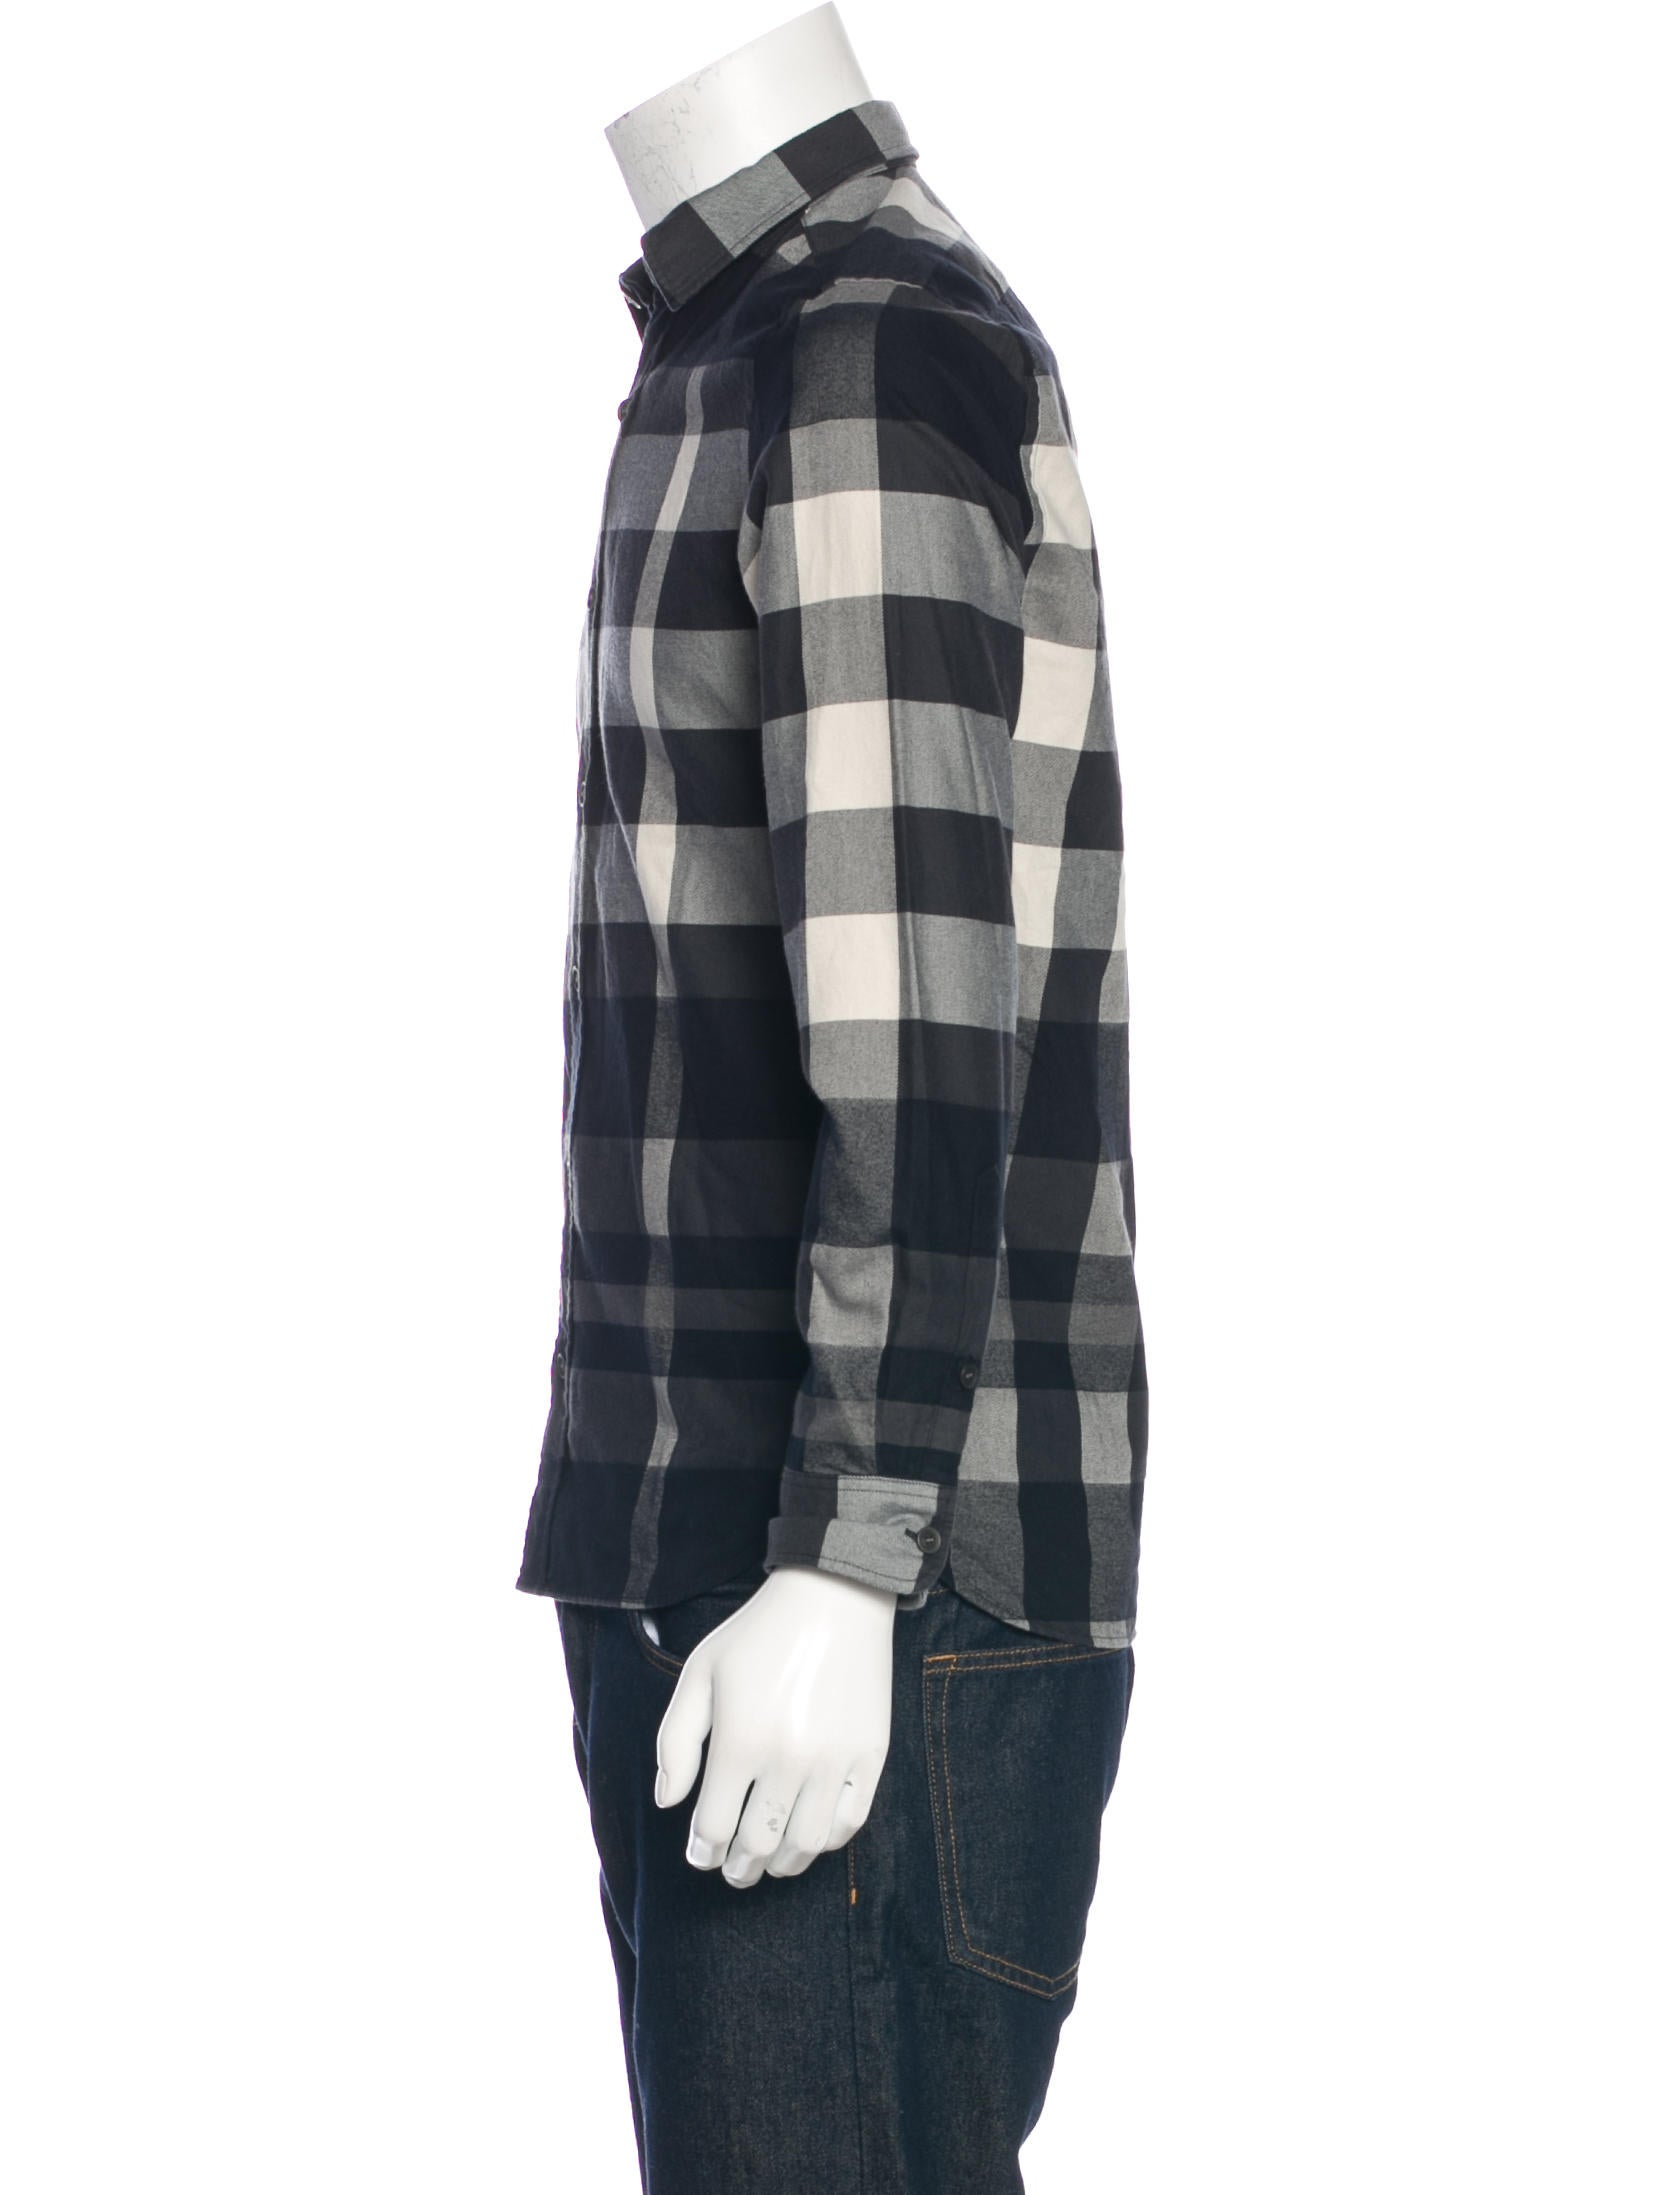 Burberry brit brushed plaid shirt clothing bbr28820 for Burberry brit plaid shirt